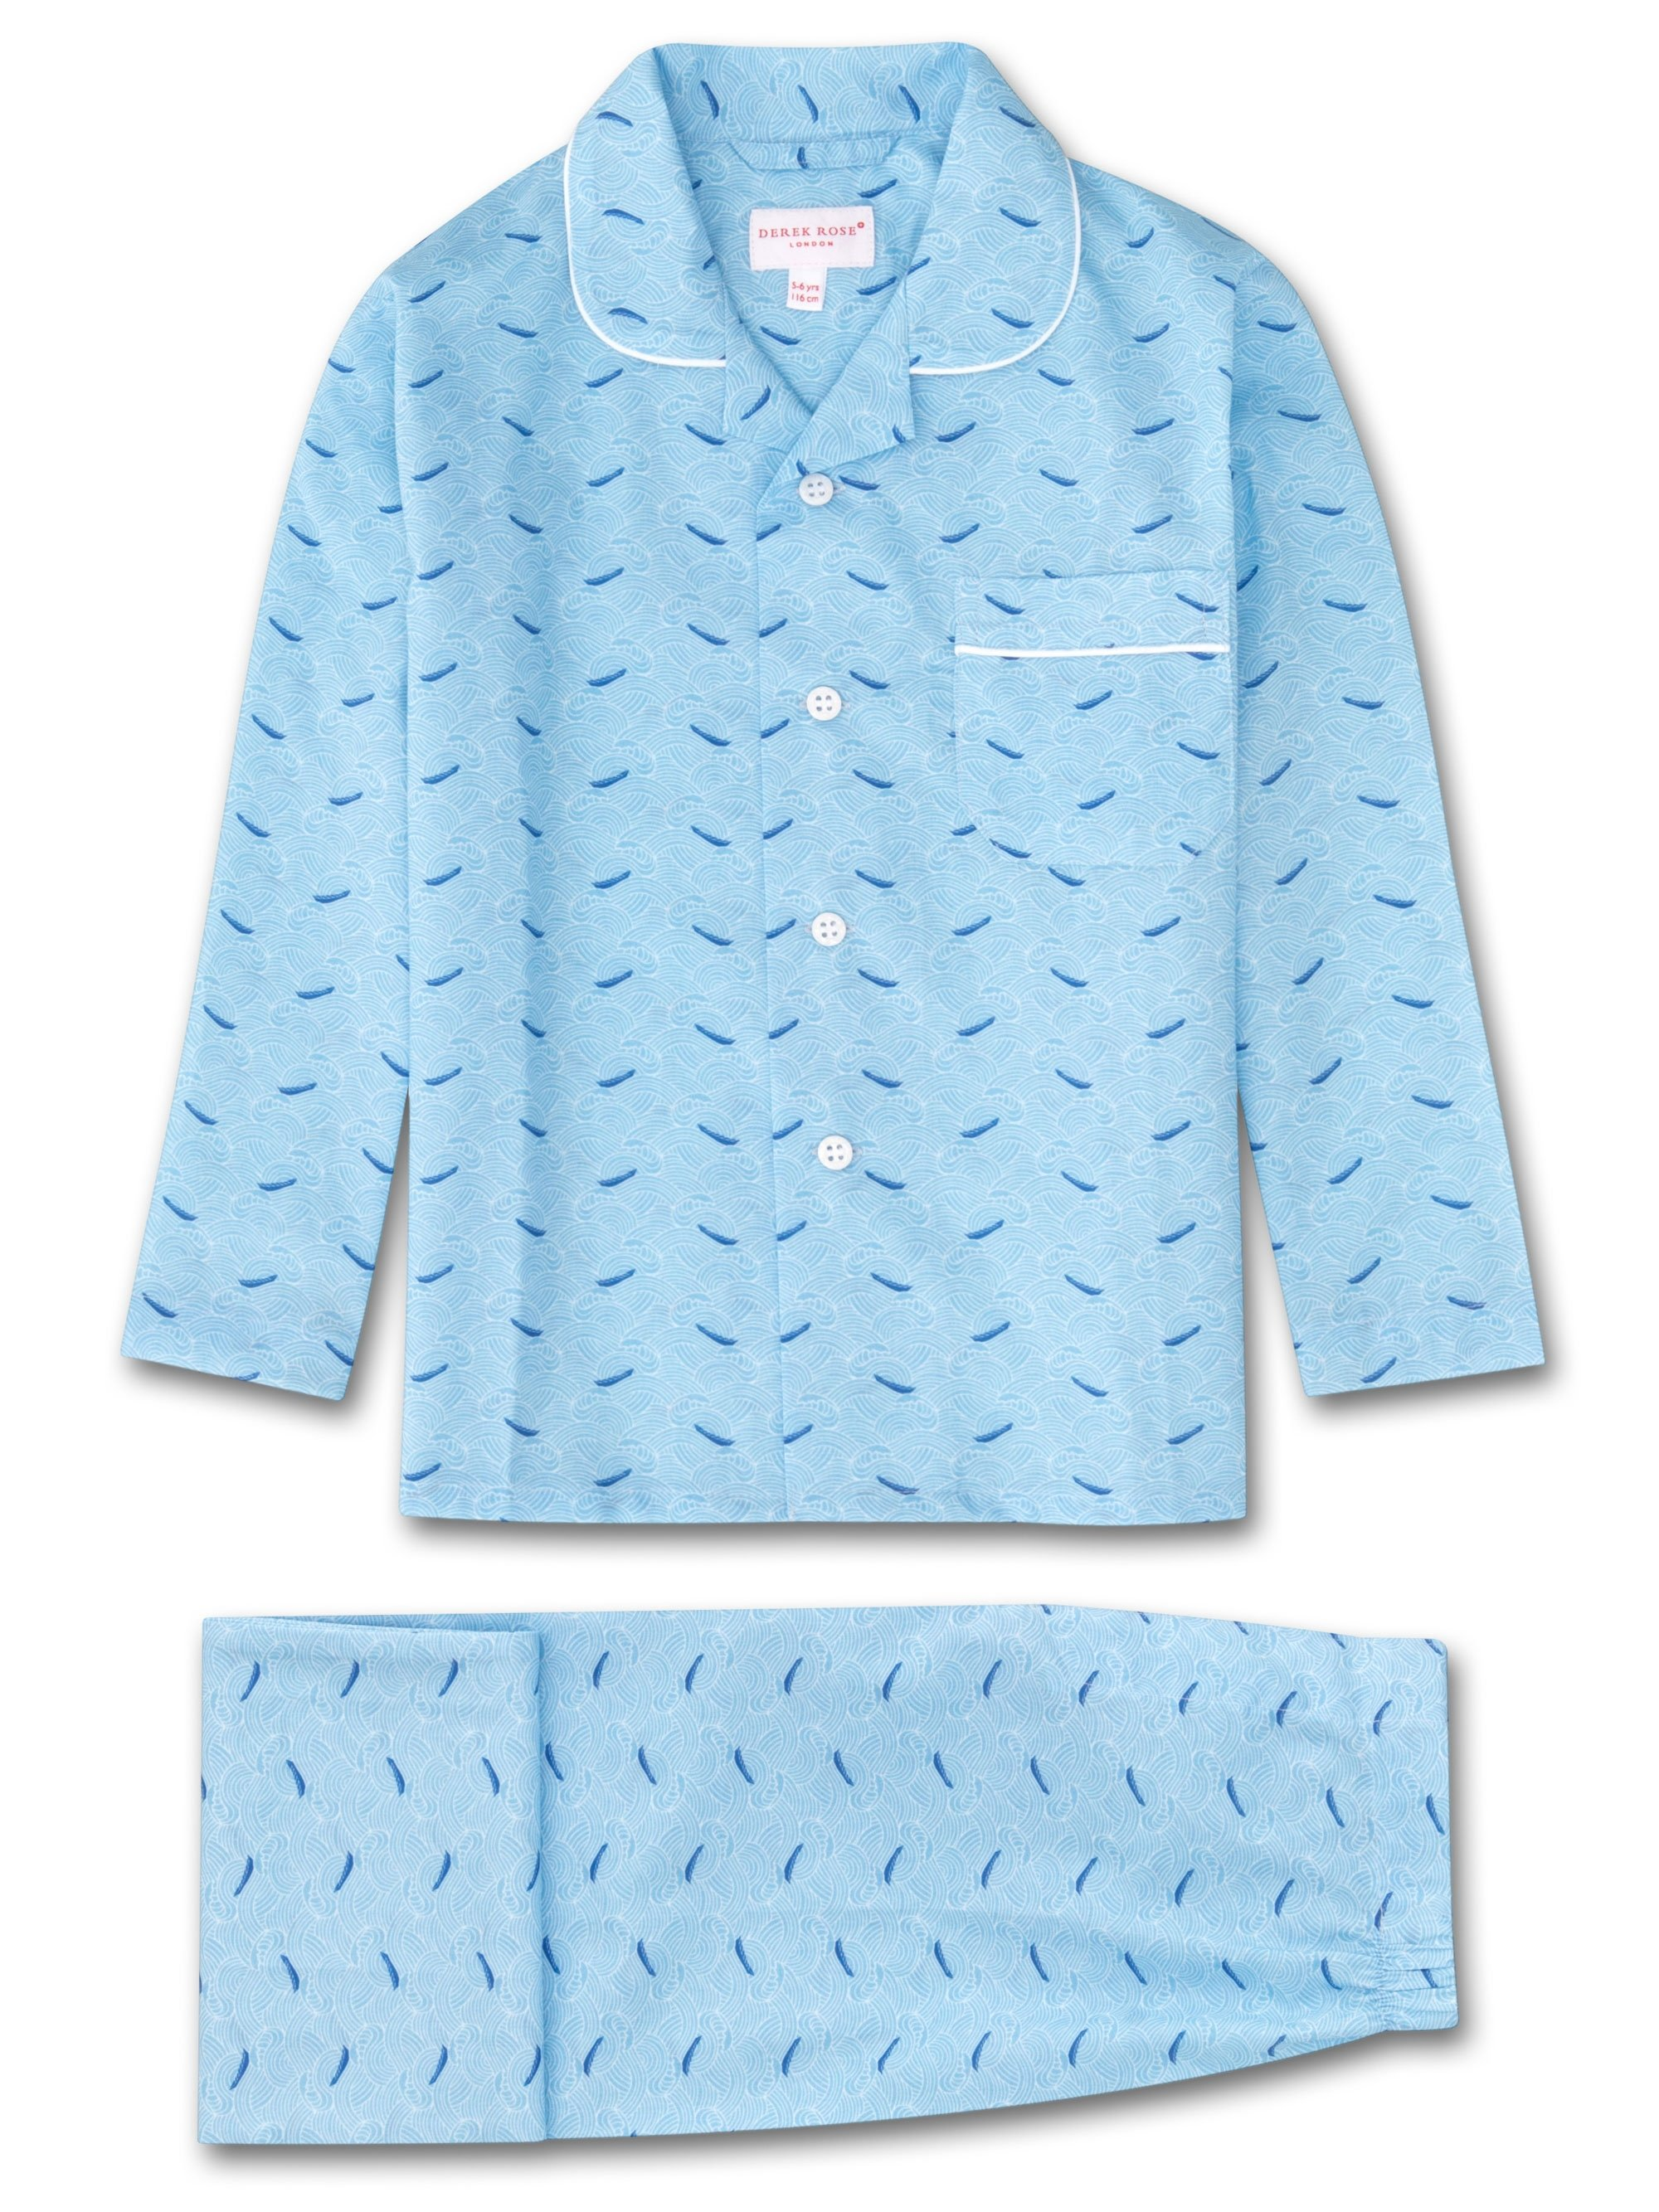 Kids' Pyjamas Ledbury 12 Cotton Batiste Blue